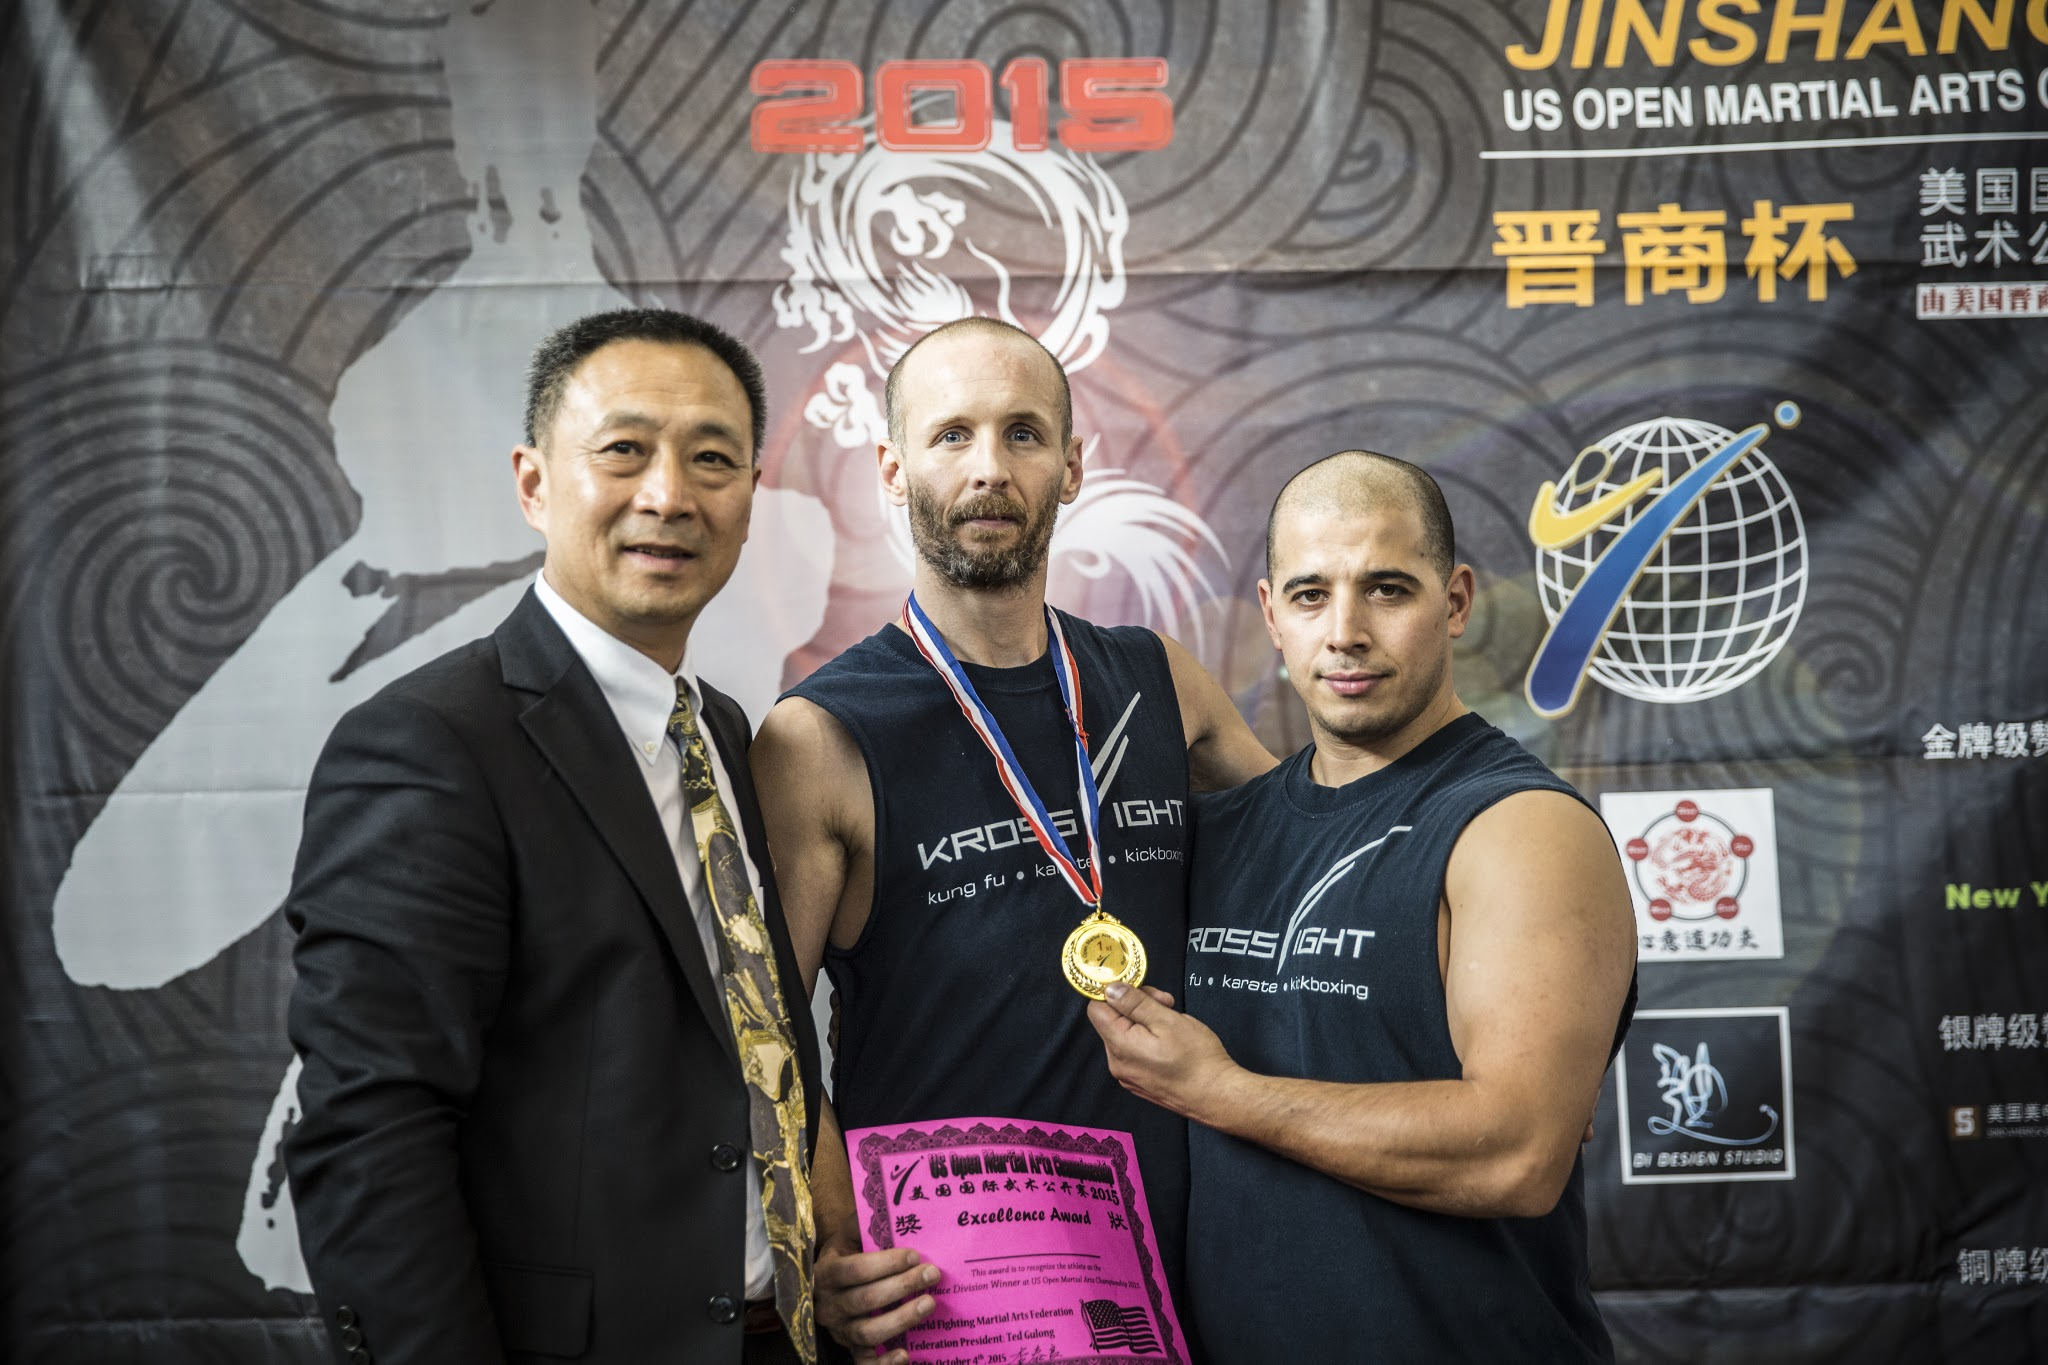 Medal award 2015 photos at the US Open Martial Arts Championship organized by the WFMAF.